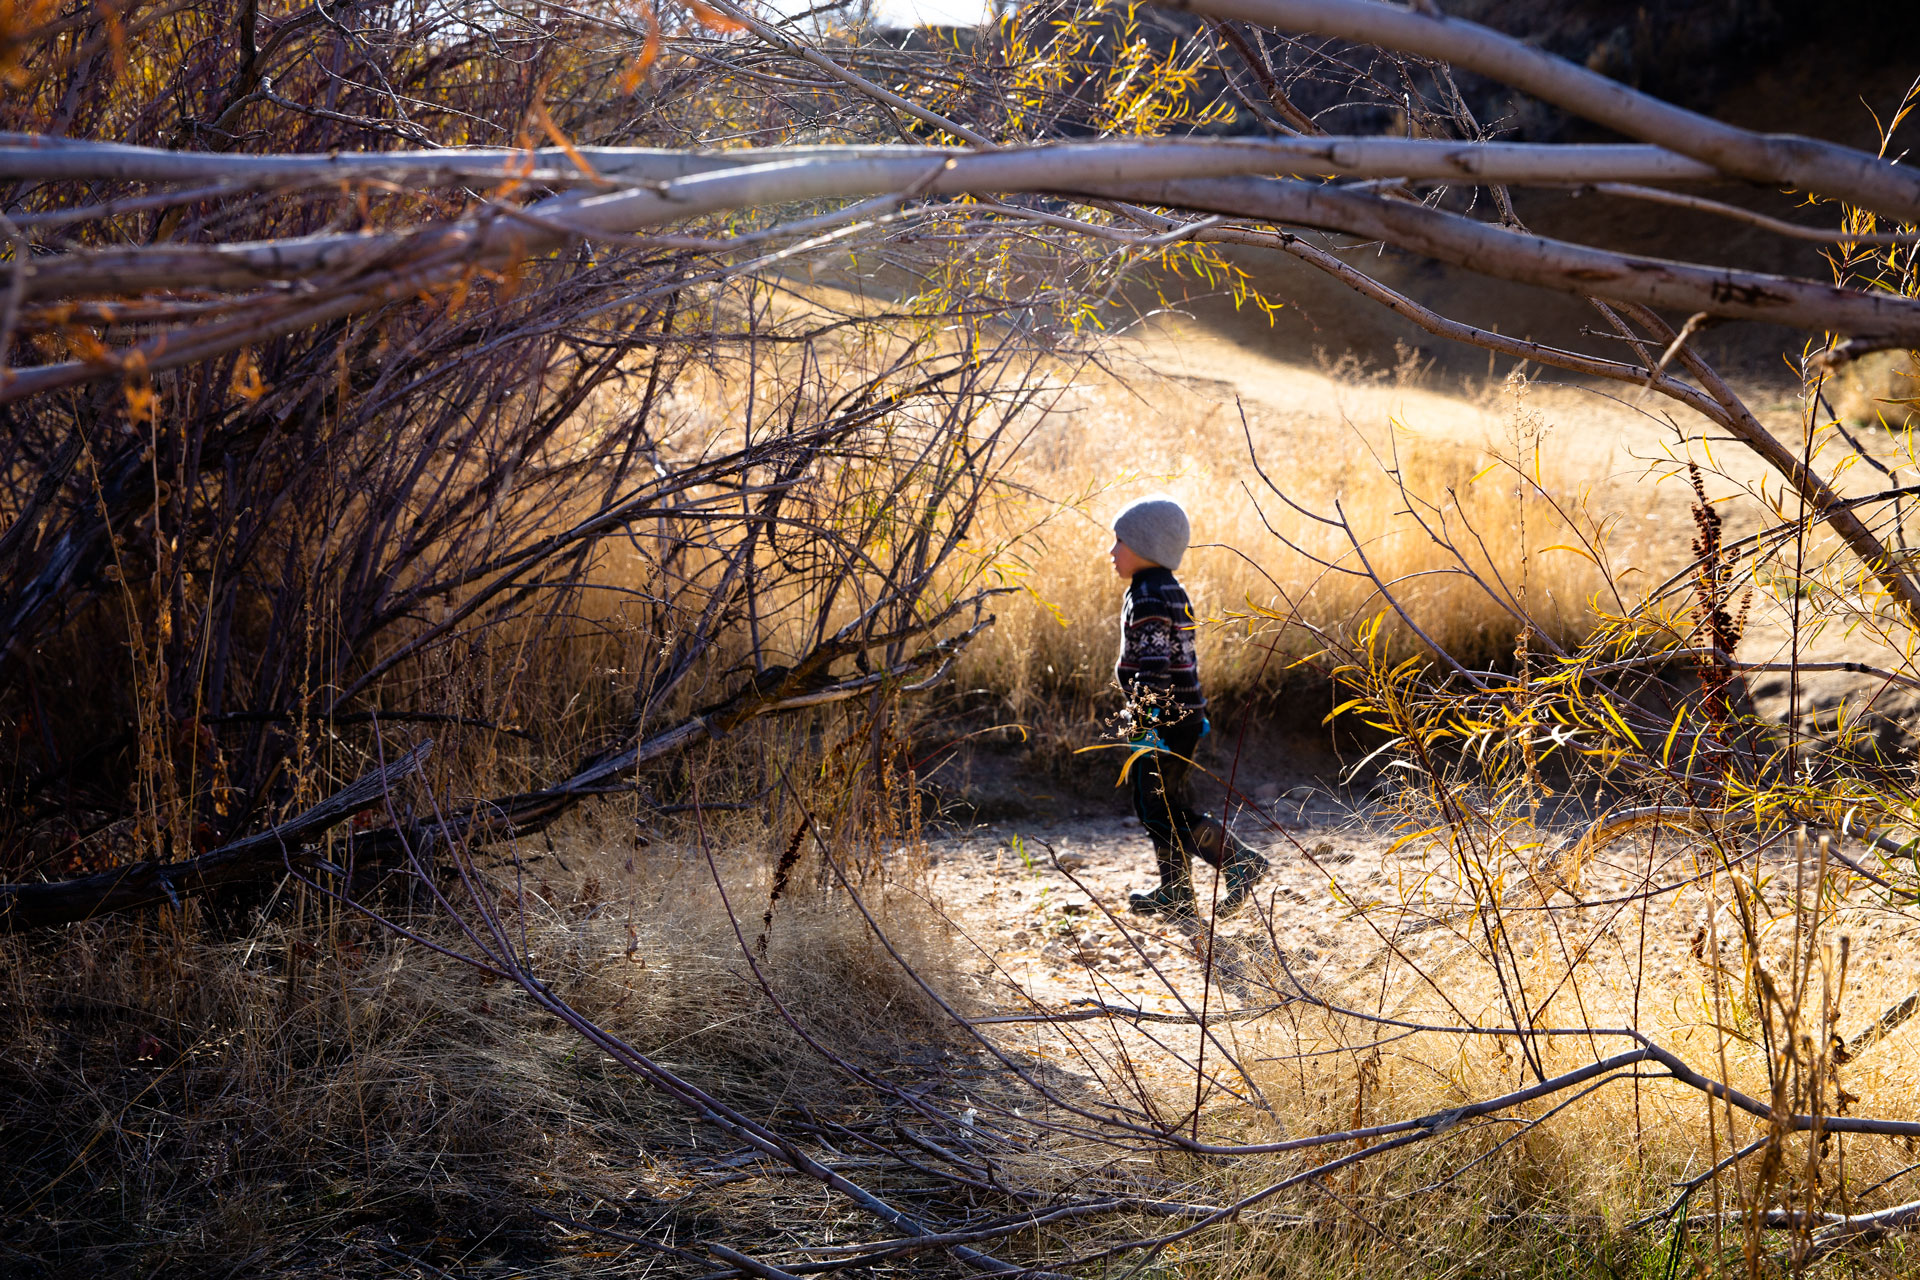 Boy running down trail to the left and his image peeking through some dead branches